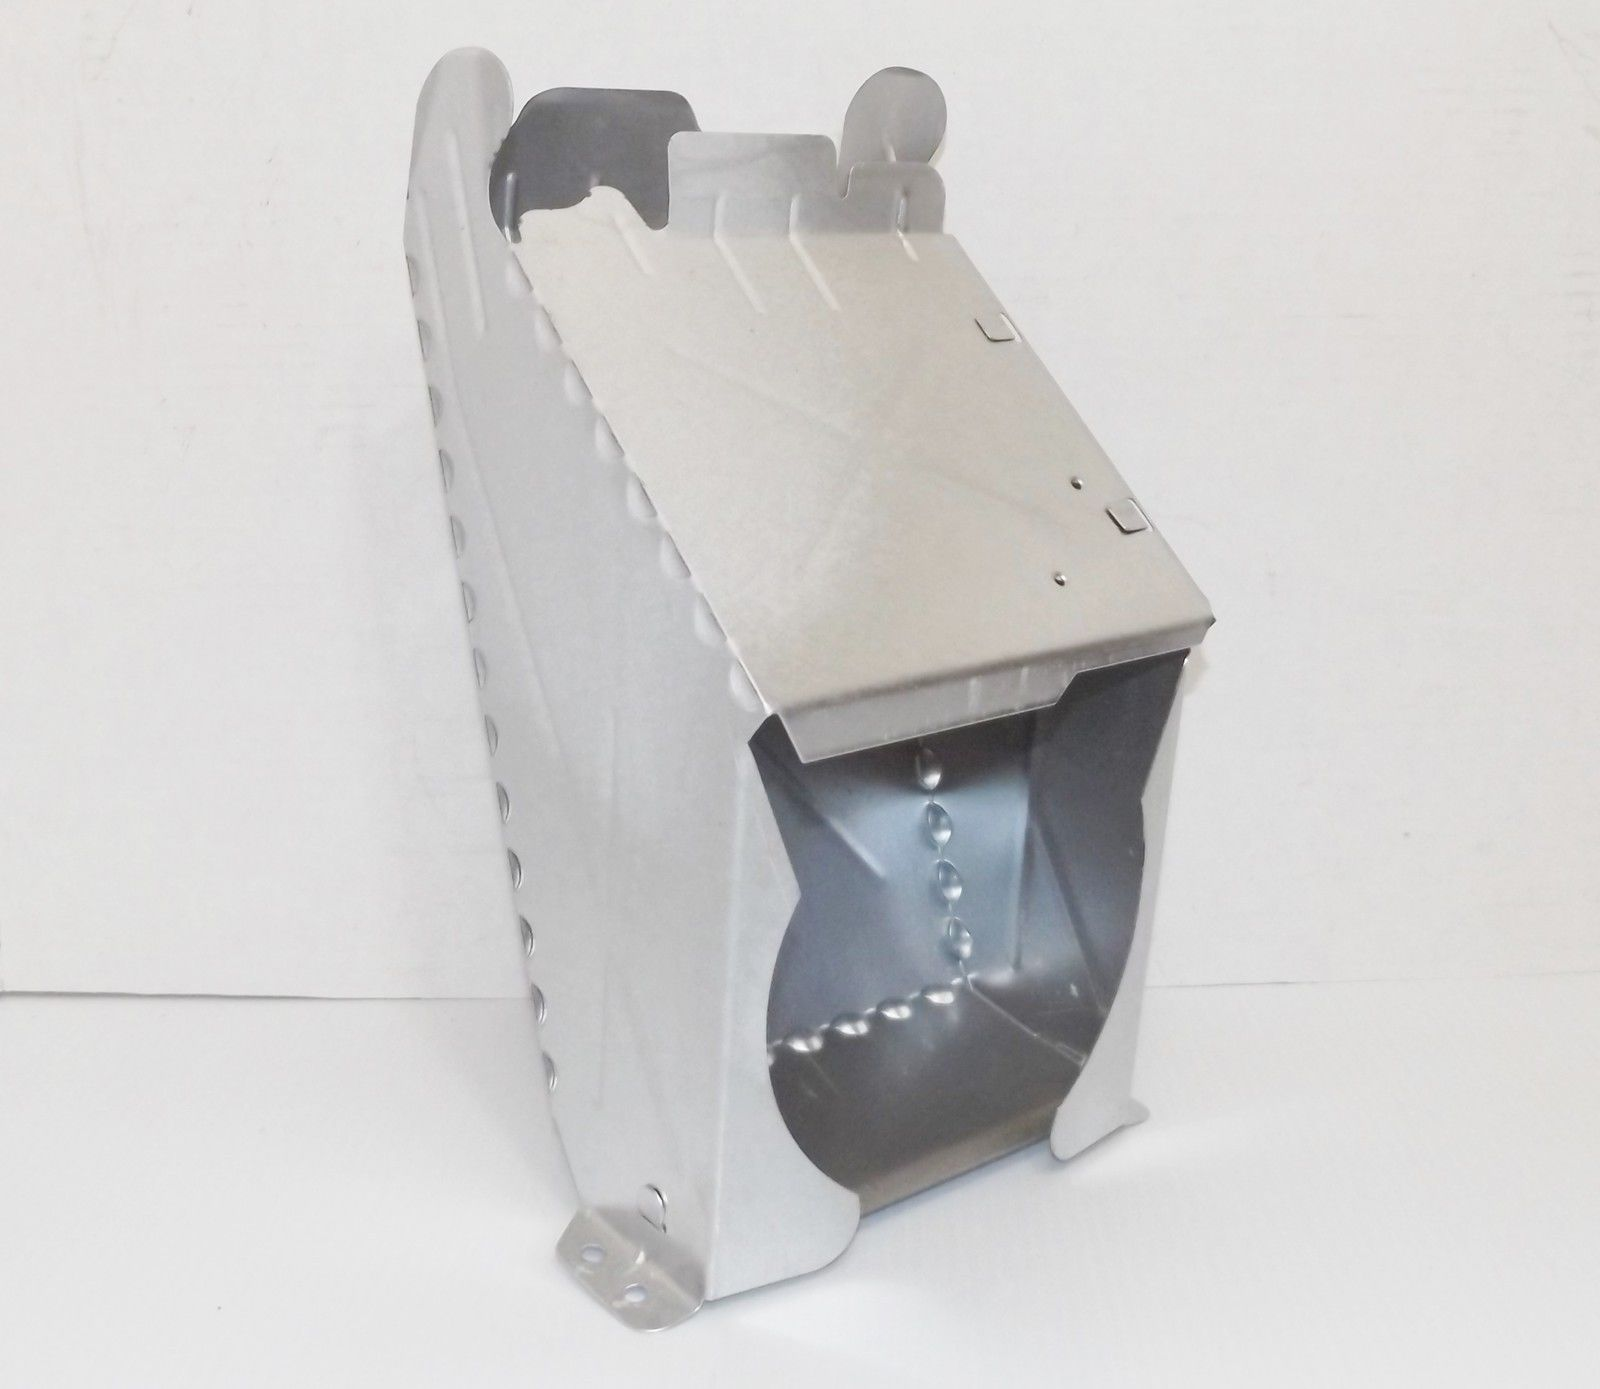 Primary image for GE Prodigy Profile Dryer : Transition Duct Assy (WE14M0082 / WE14M197) {P1424}